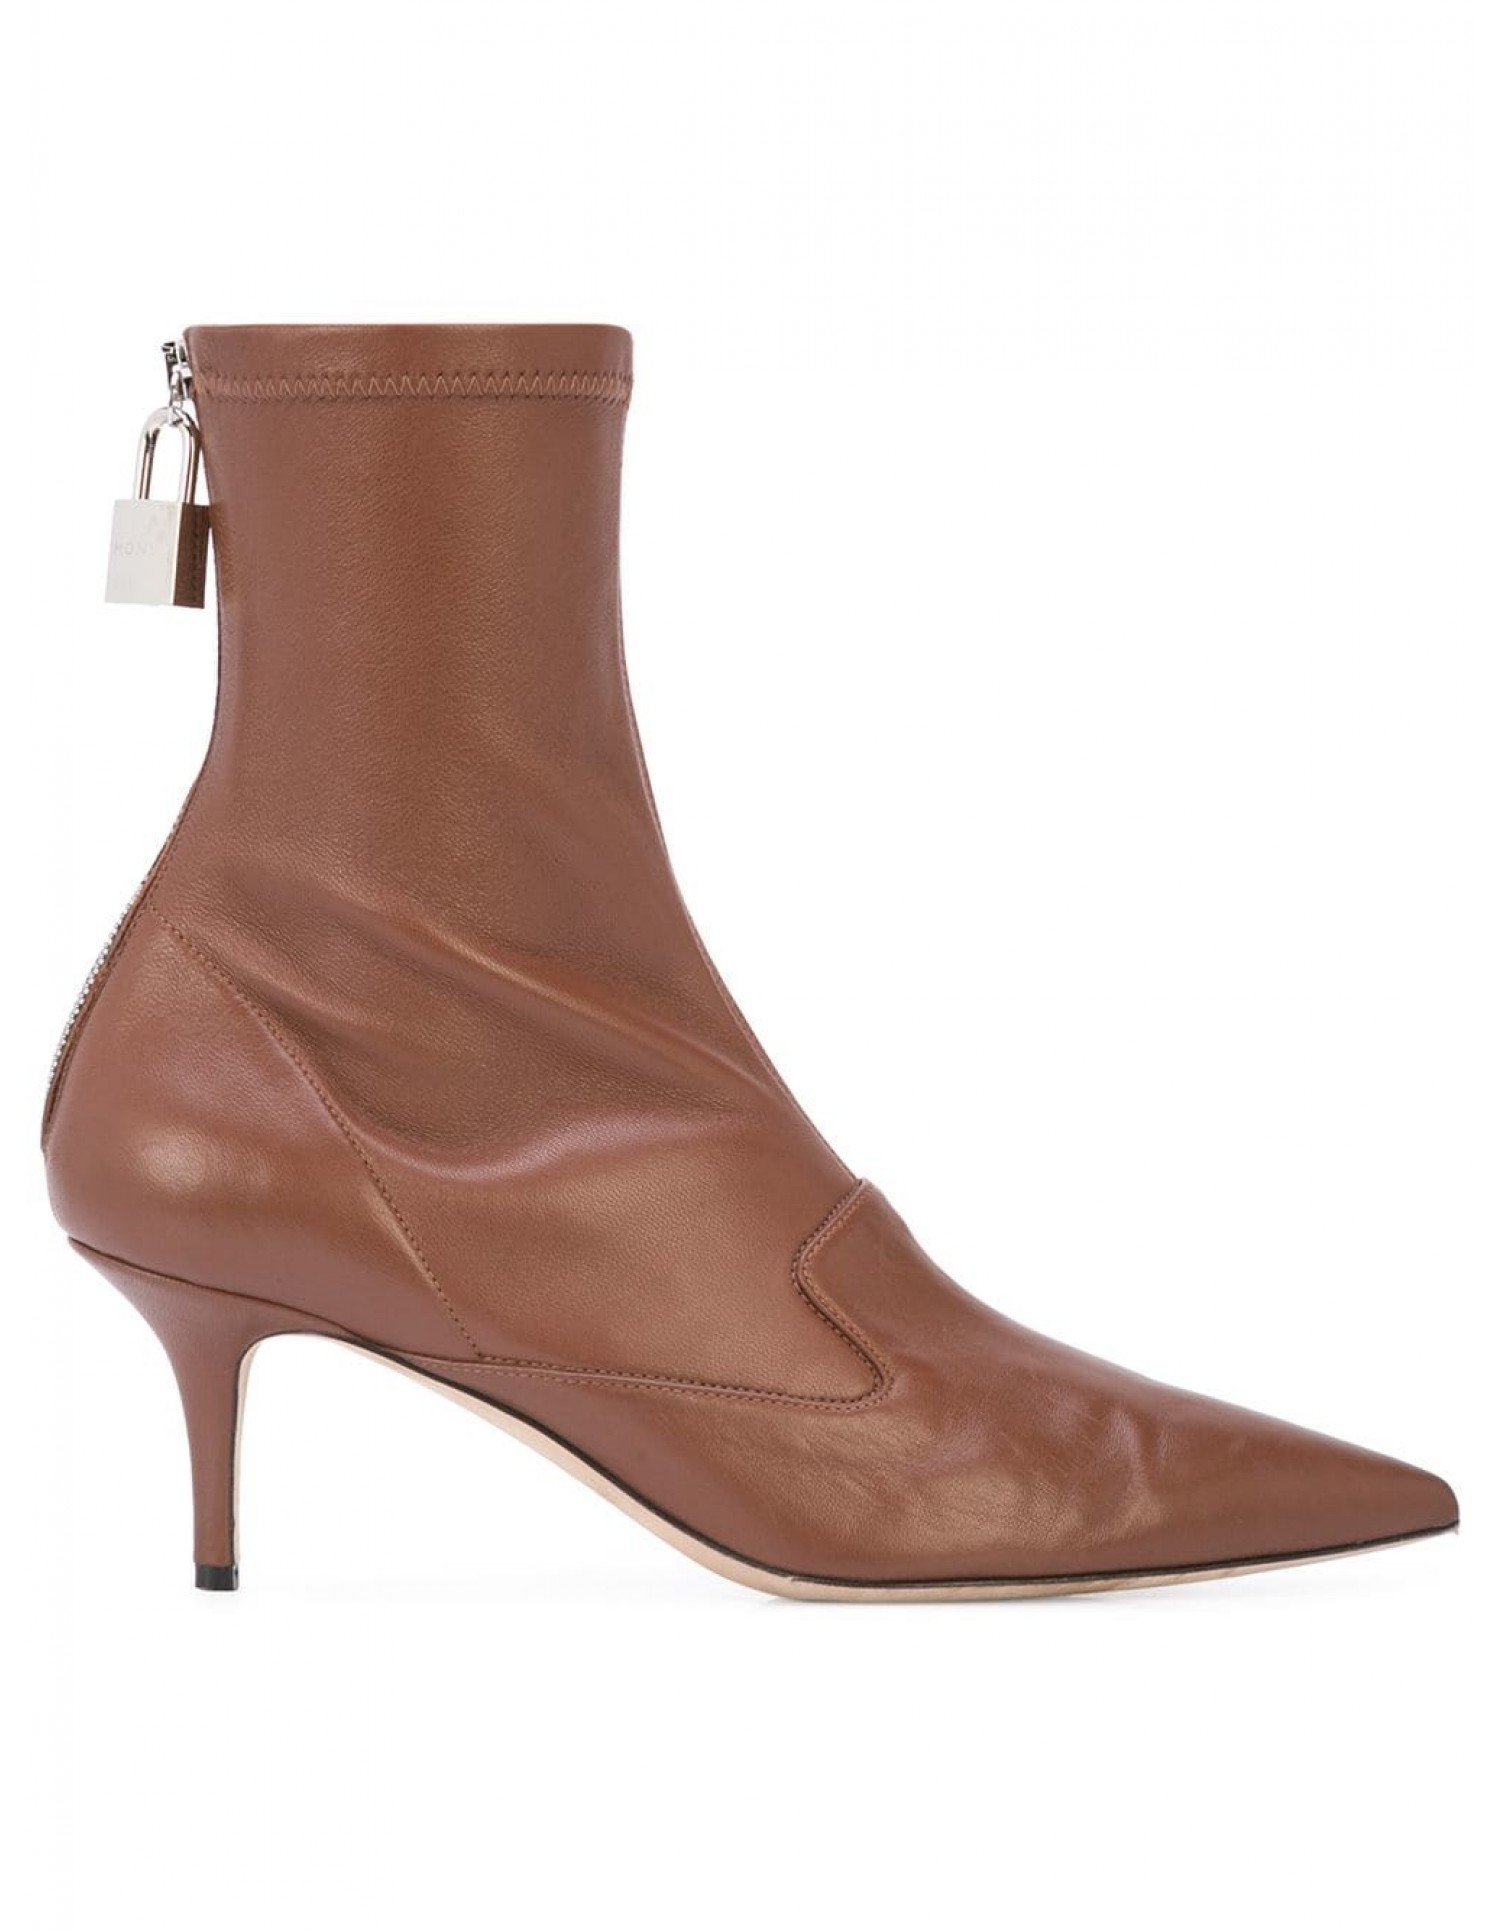 Monse Women's Brown Leather Lock Bootie Side View